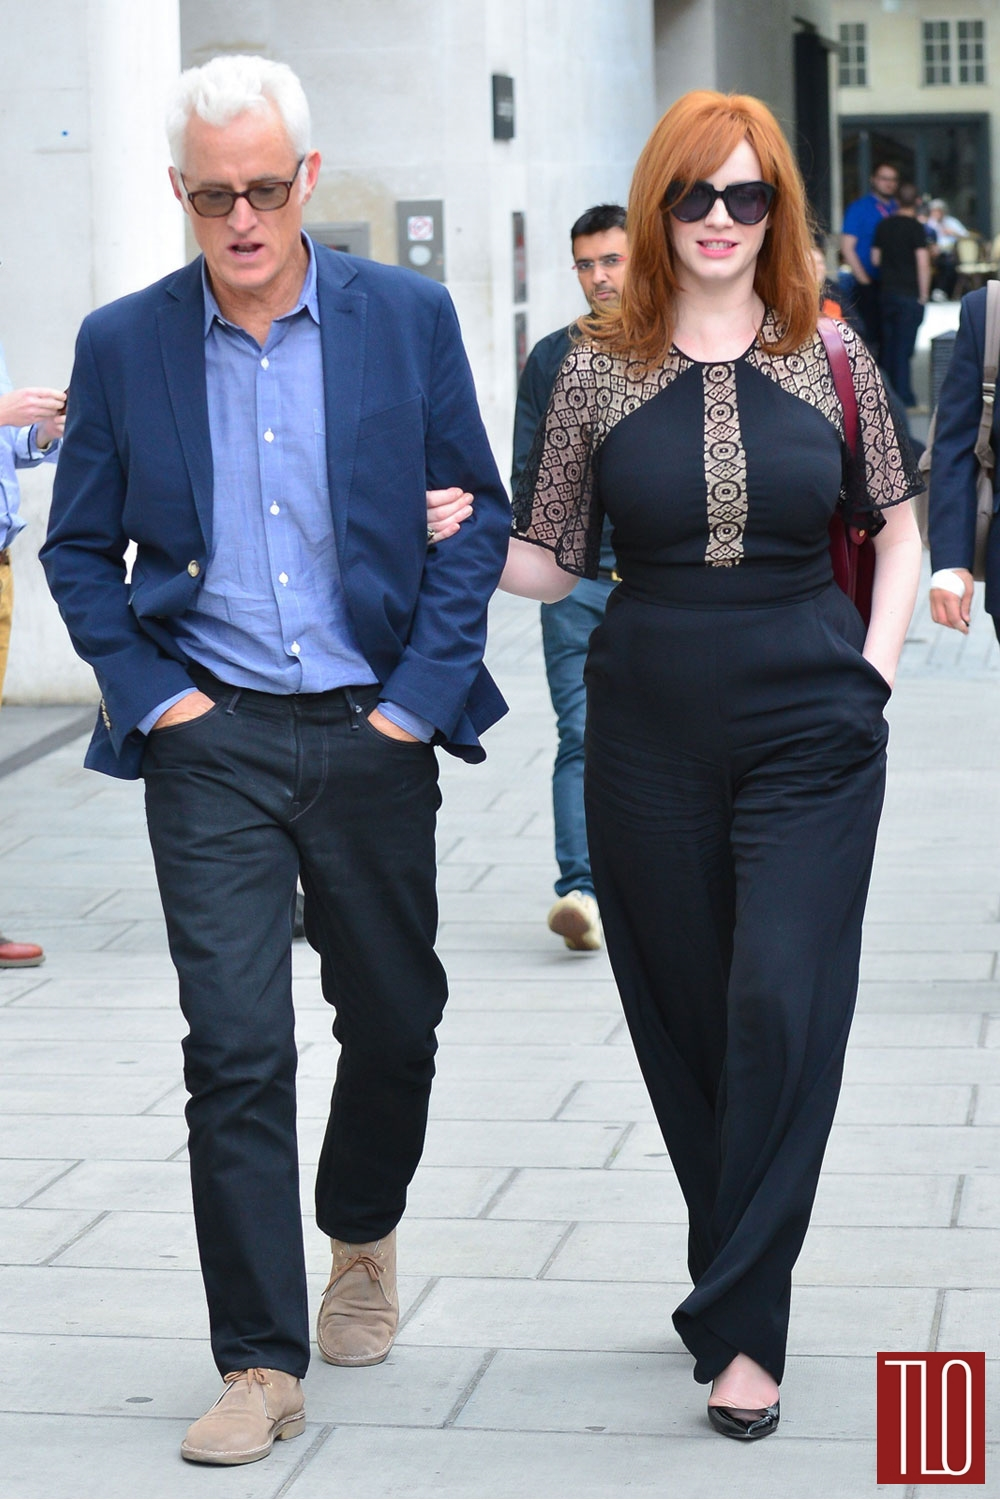 John-Slattery-Christina-Hendricks-Temperley-London-GOTS-London-Tom-Lorenz-Site-TLO (1)